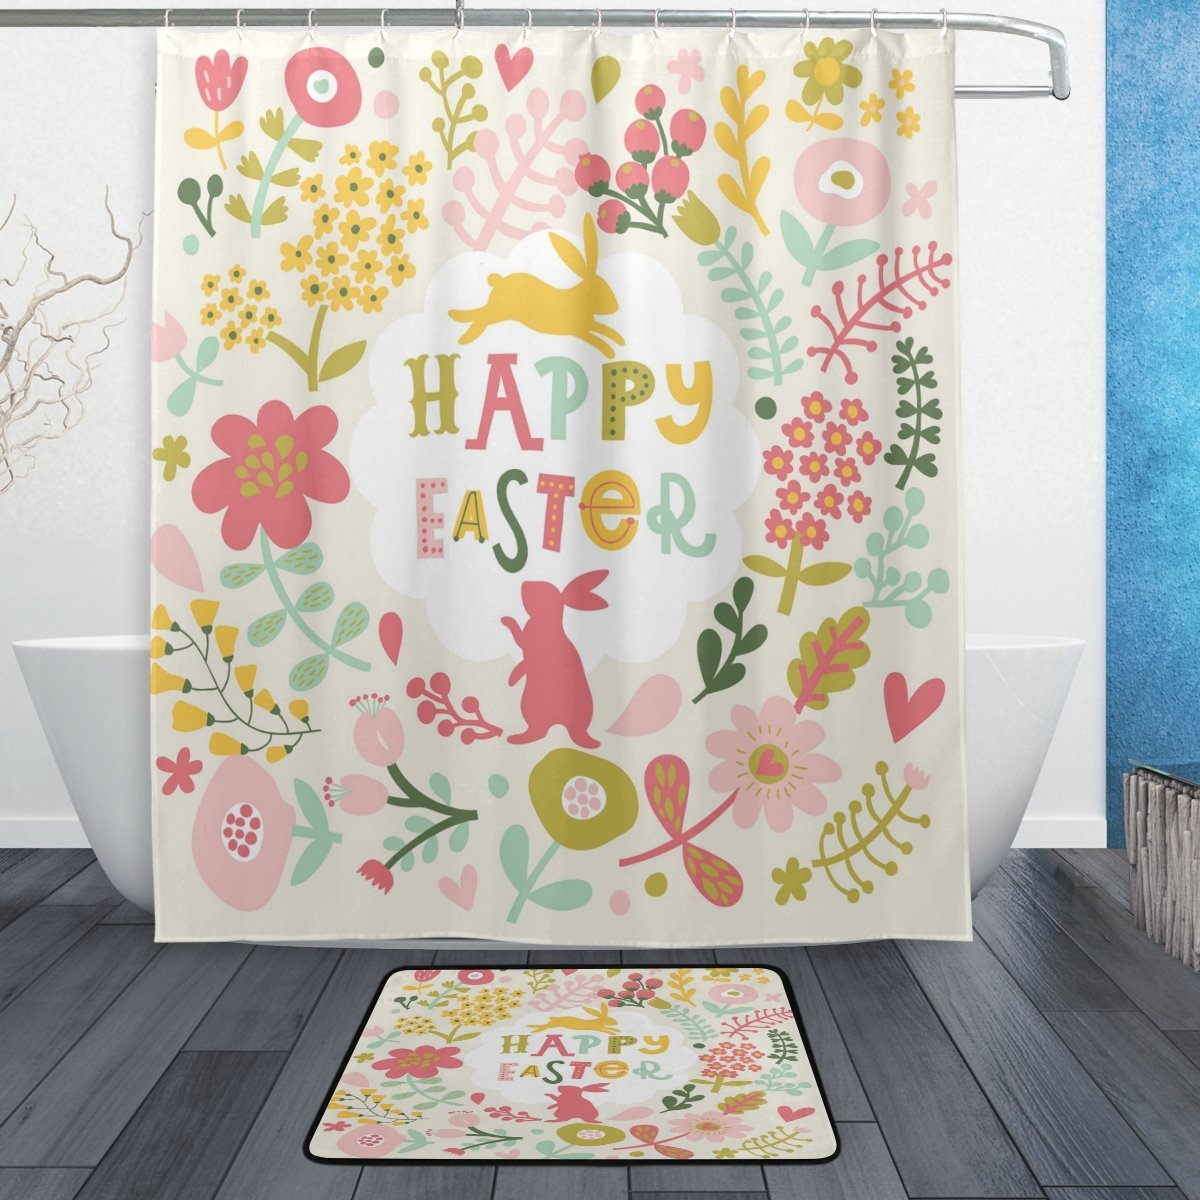 Happy Easter Shower Curtain And Mat Set, Flower Floral